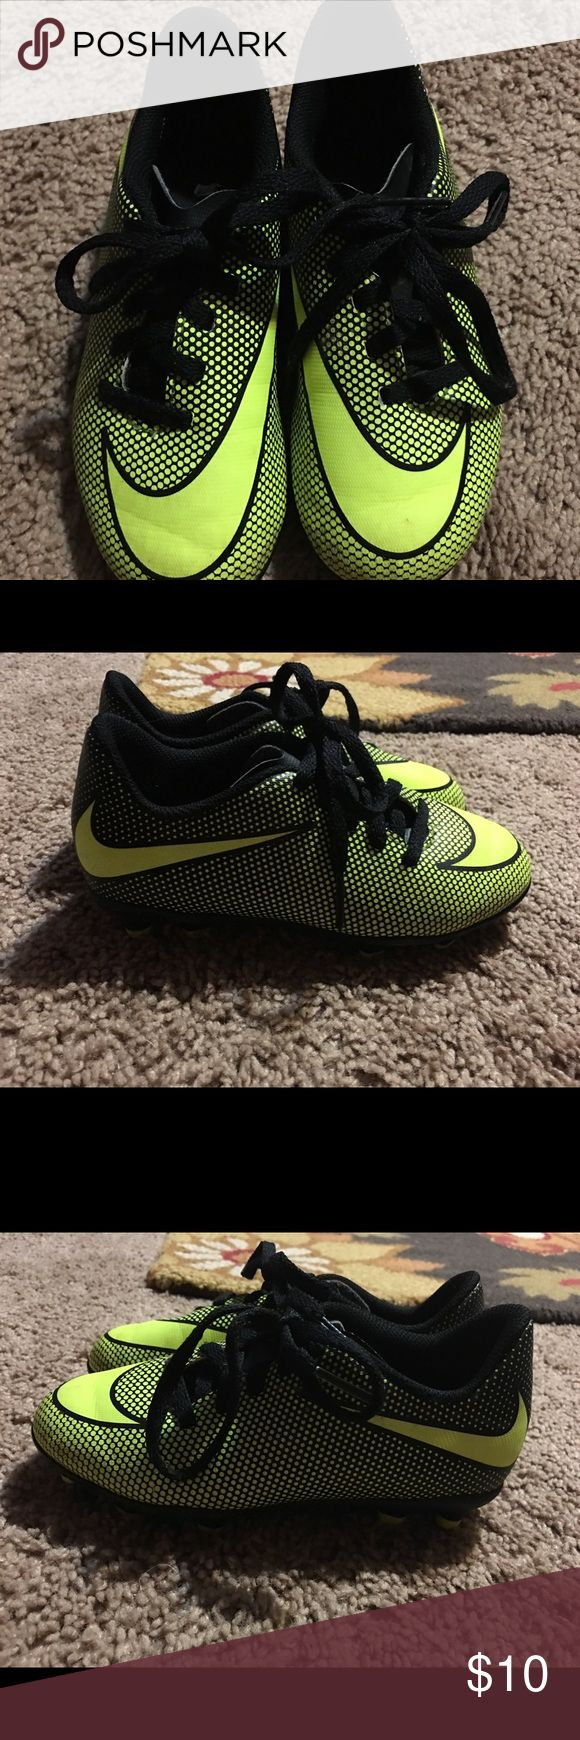 Boys' Nike Soccer Cleats Toddler size 11. USED condition. Nike Shoes